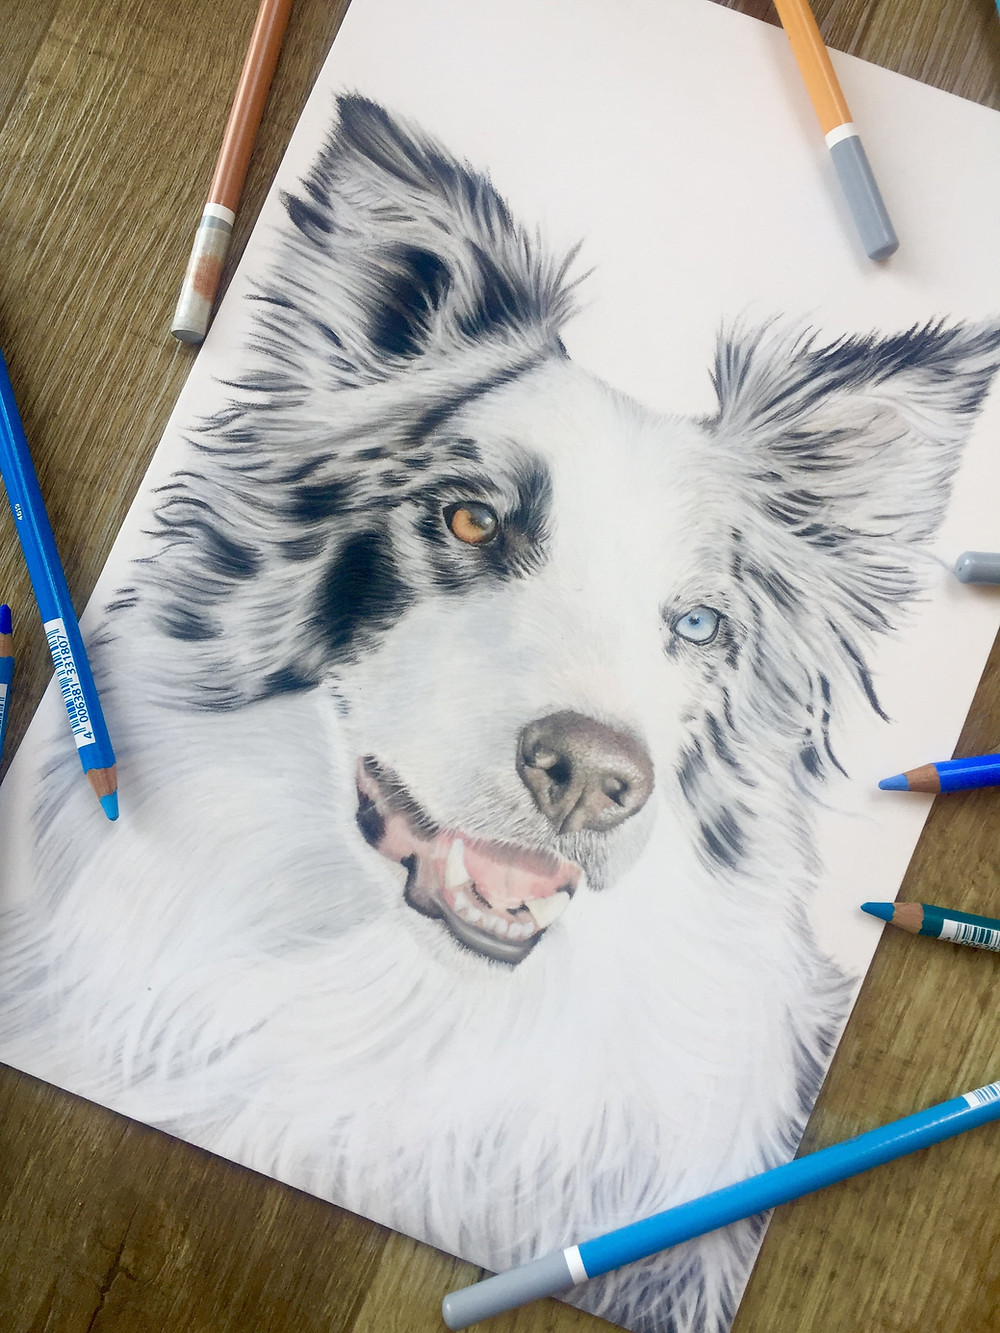 The finished border collie portrait